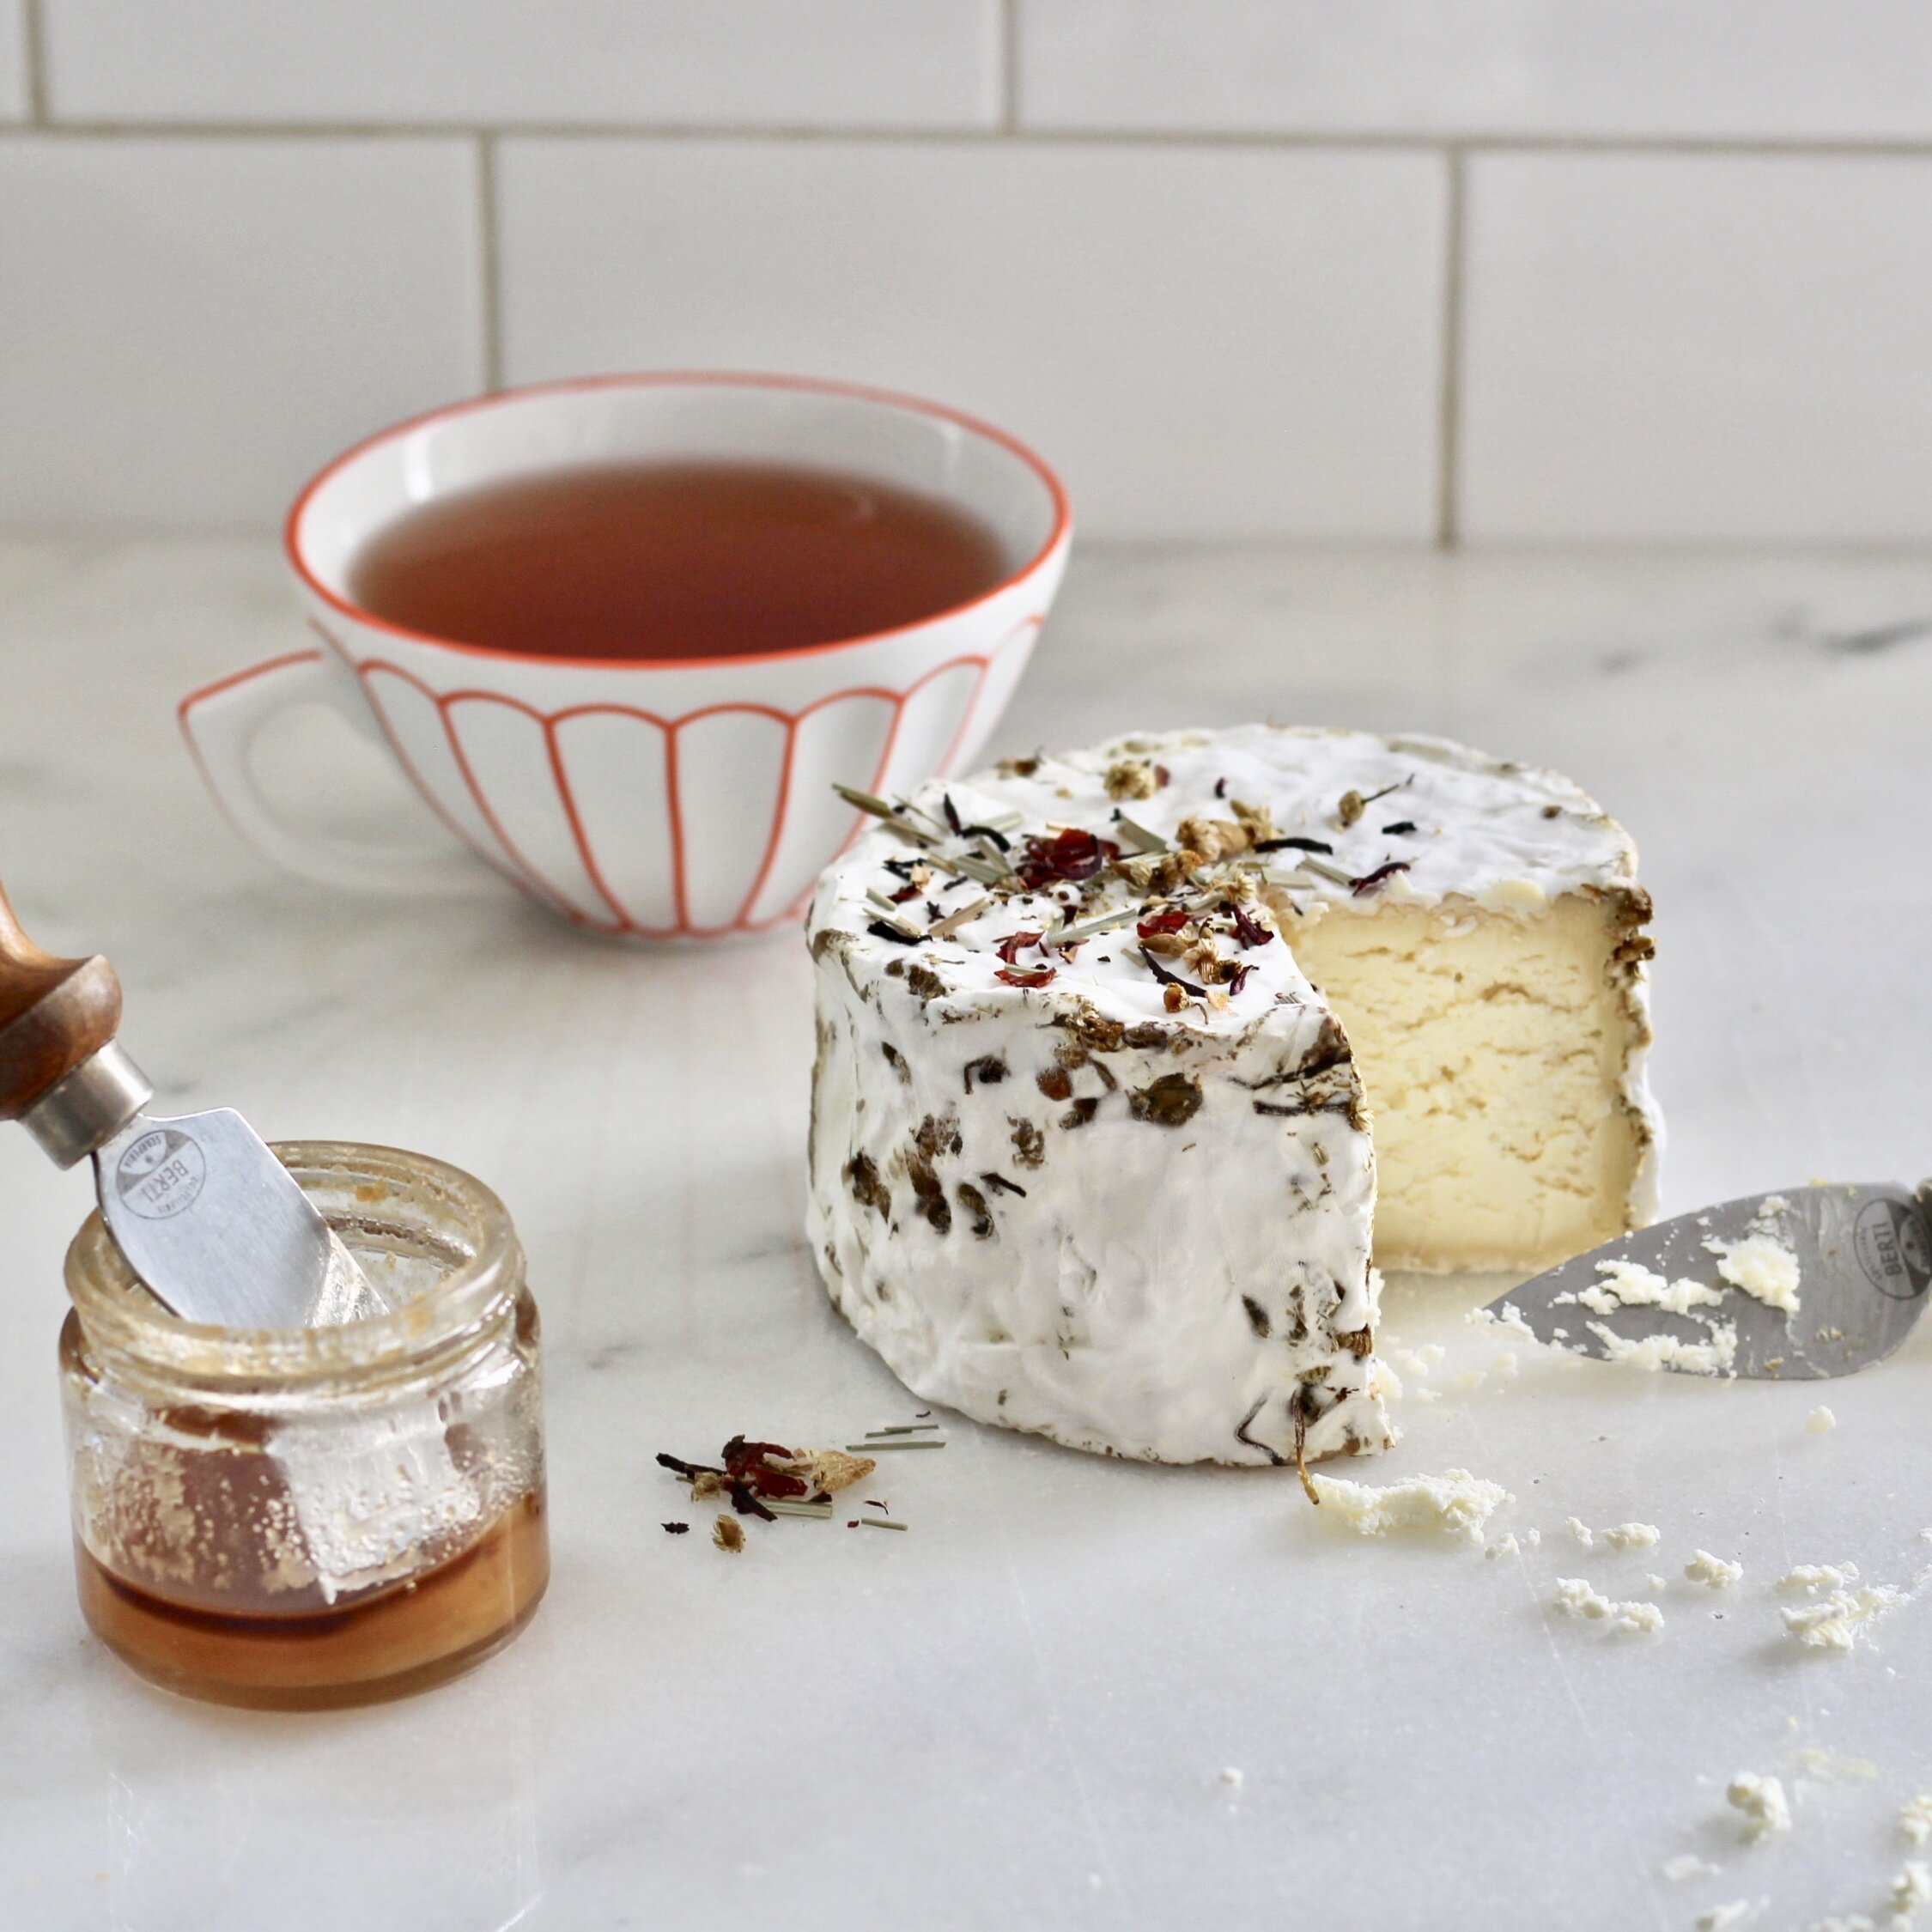 Pairing created in collaboration with Stefania Patrizio, Cheesemonger at DiBruno Bros. House of Cheese in Philadelphia